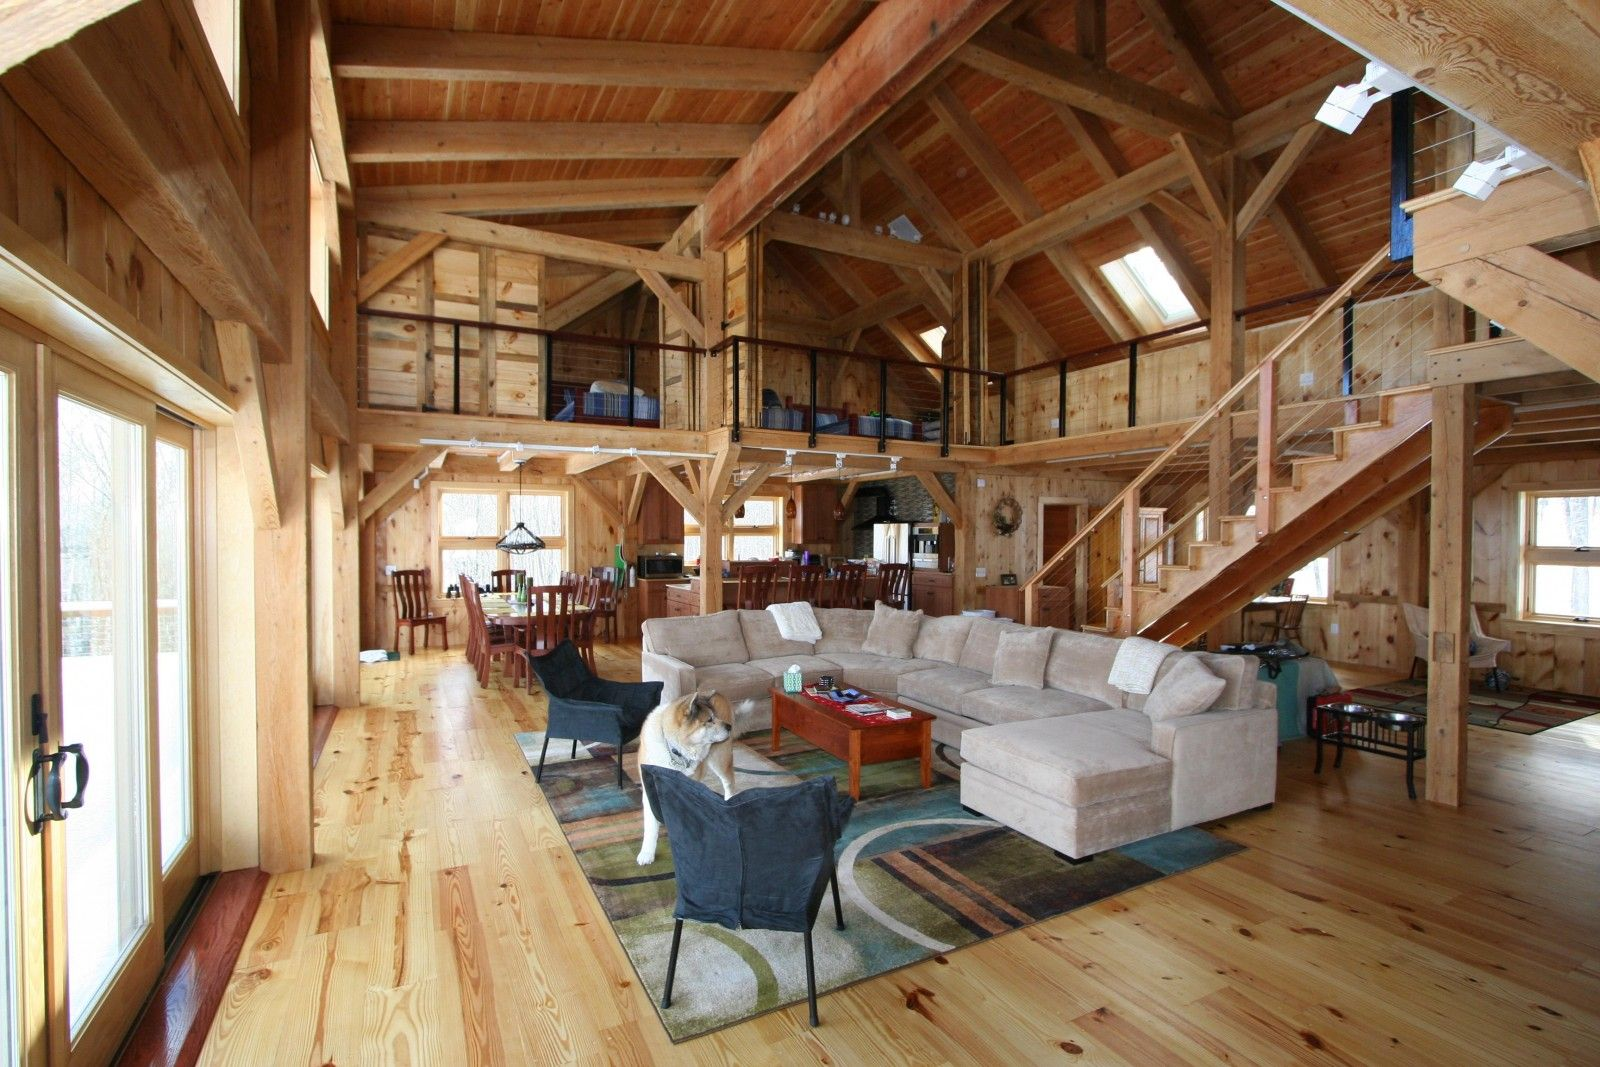 Spectacular Pole Barn Houses For Attractive Home Design Pole Barn Houses With Microfiber Sectional Couch With Chaise And Area Rug Also Wood Flooring With